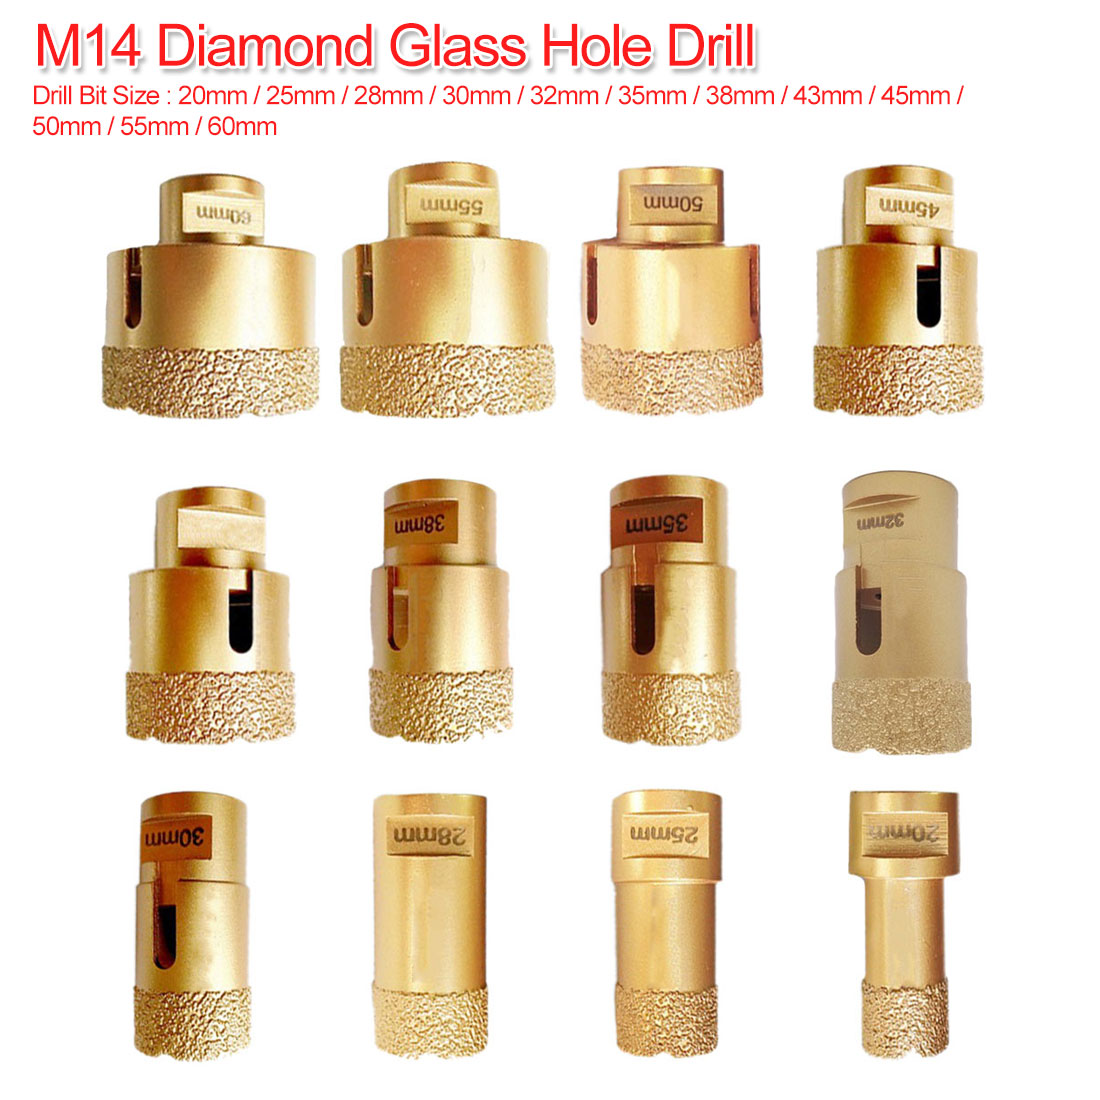 Dry/Wet Drilling 20mm-60mm Diamond Vacuum Brazed Drilling Core Bits M14 Connection Drill Bits Hole Saw Diamond For Tile Stone